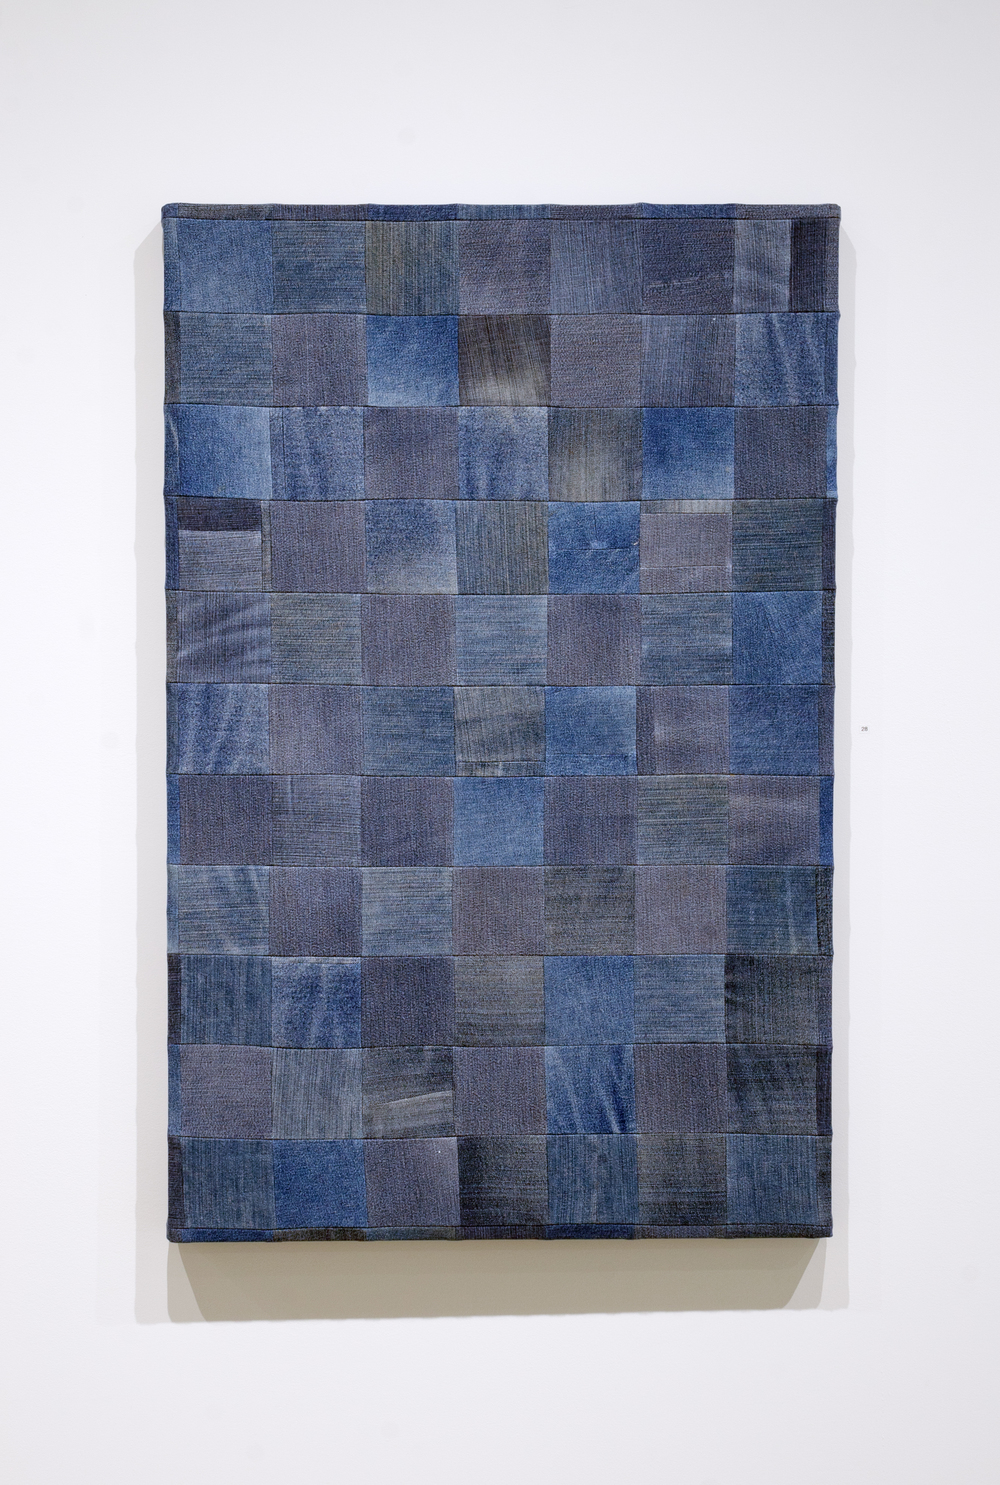 Jeans (Medium),  2015, mixed fabrics, 88 x 75 cm (34.5 x 29.5 in)